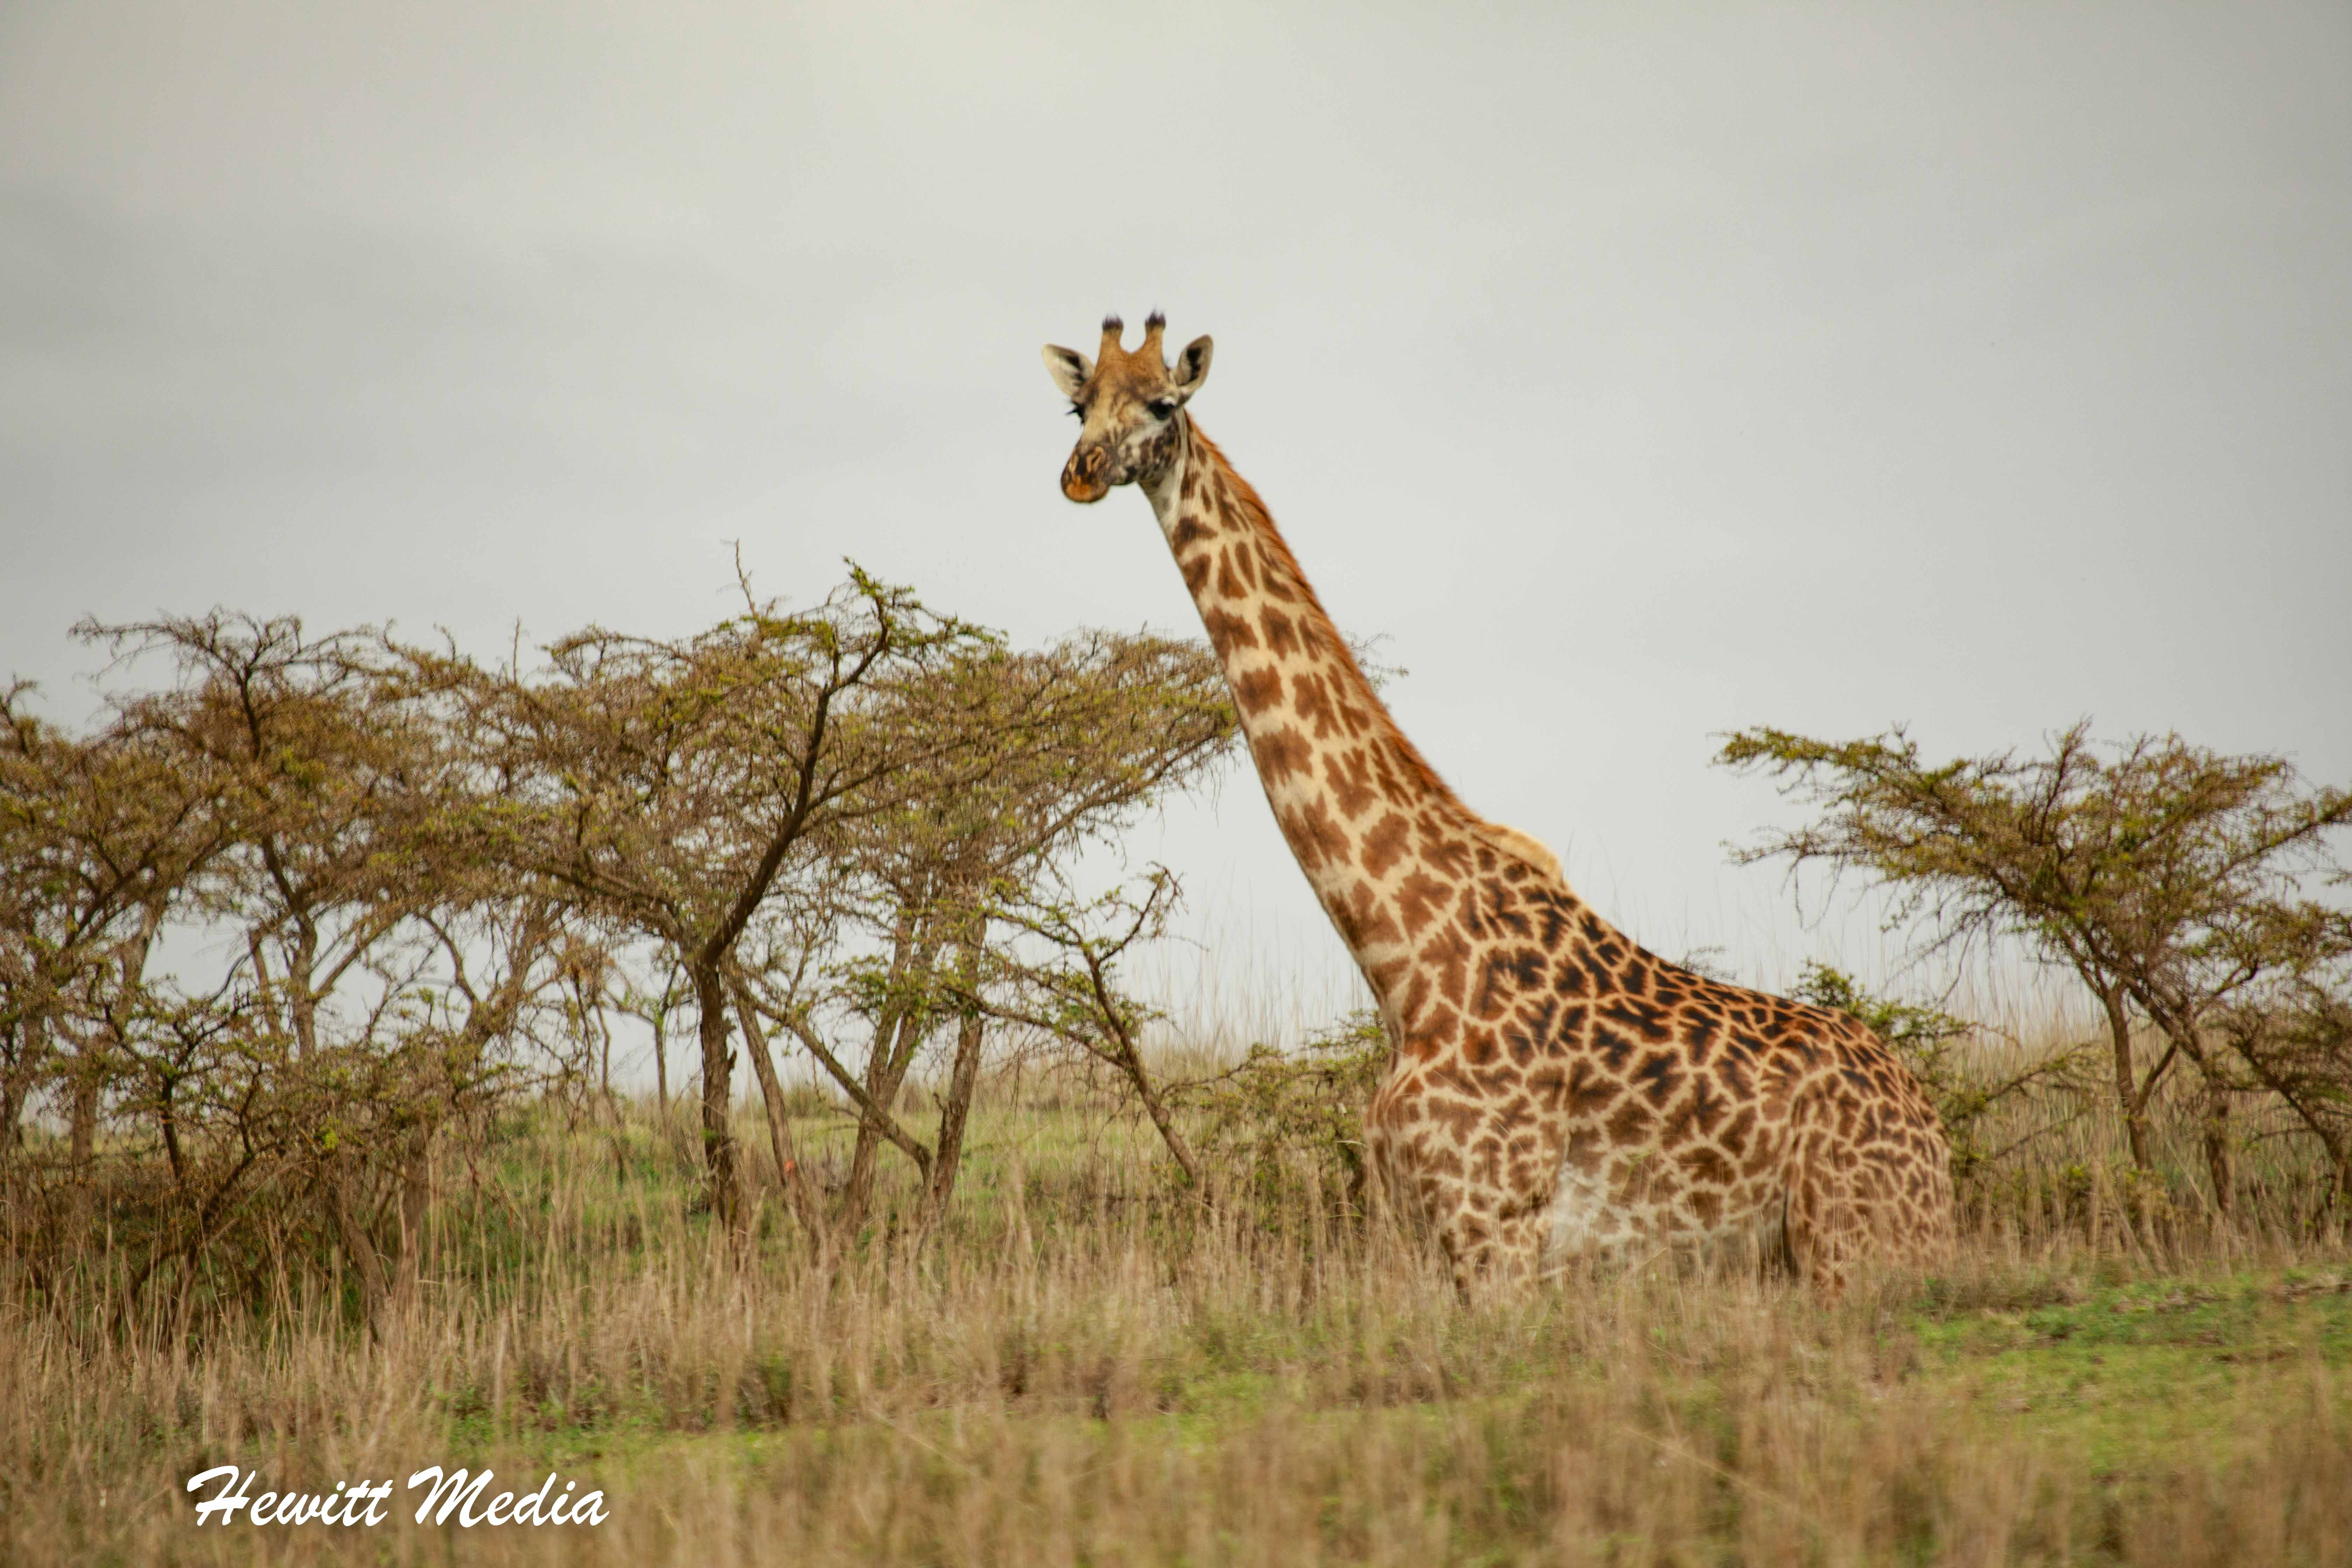 Giraffe in the Serengeti National Park